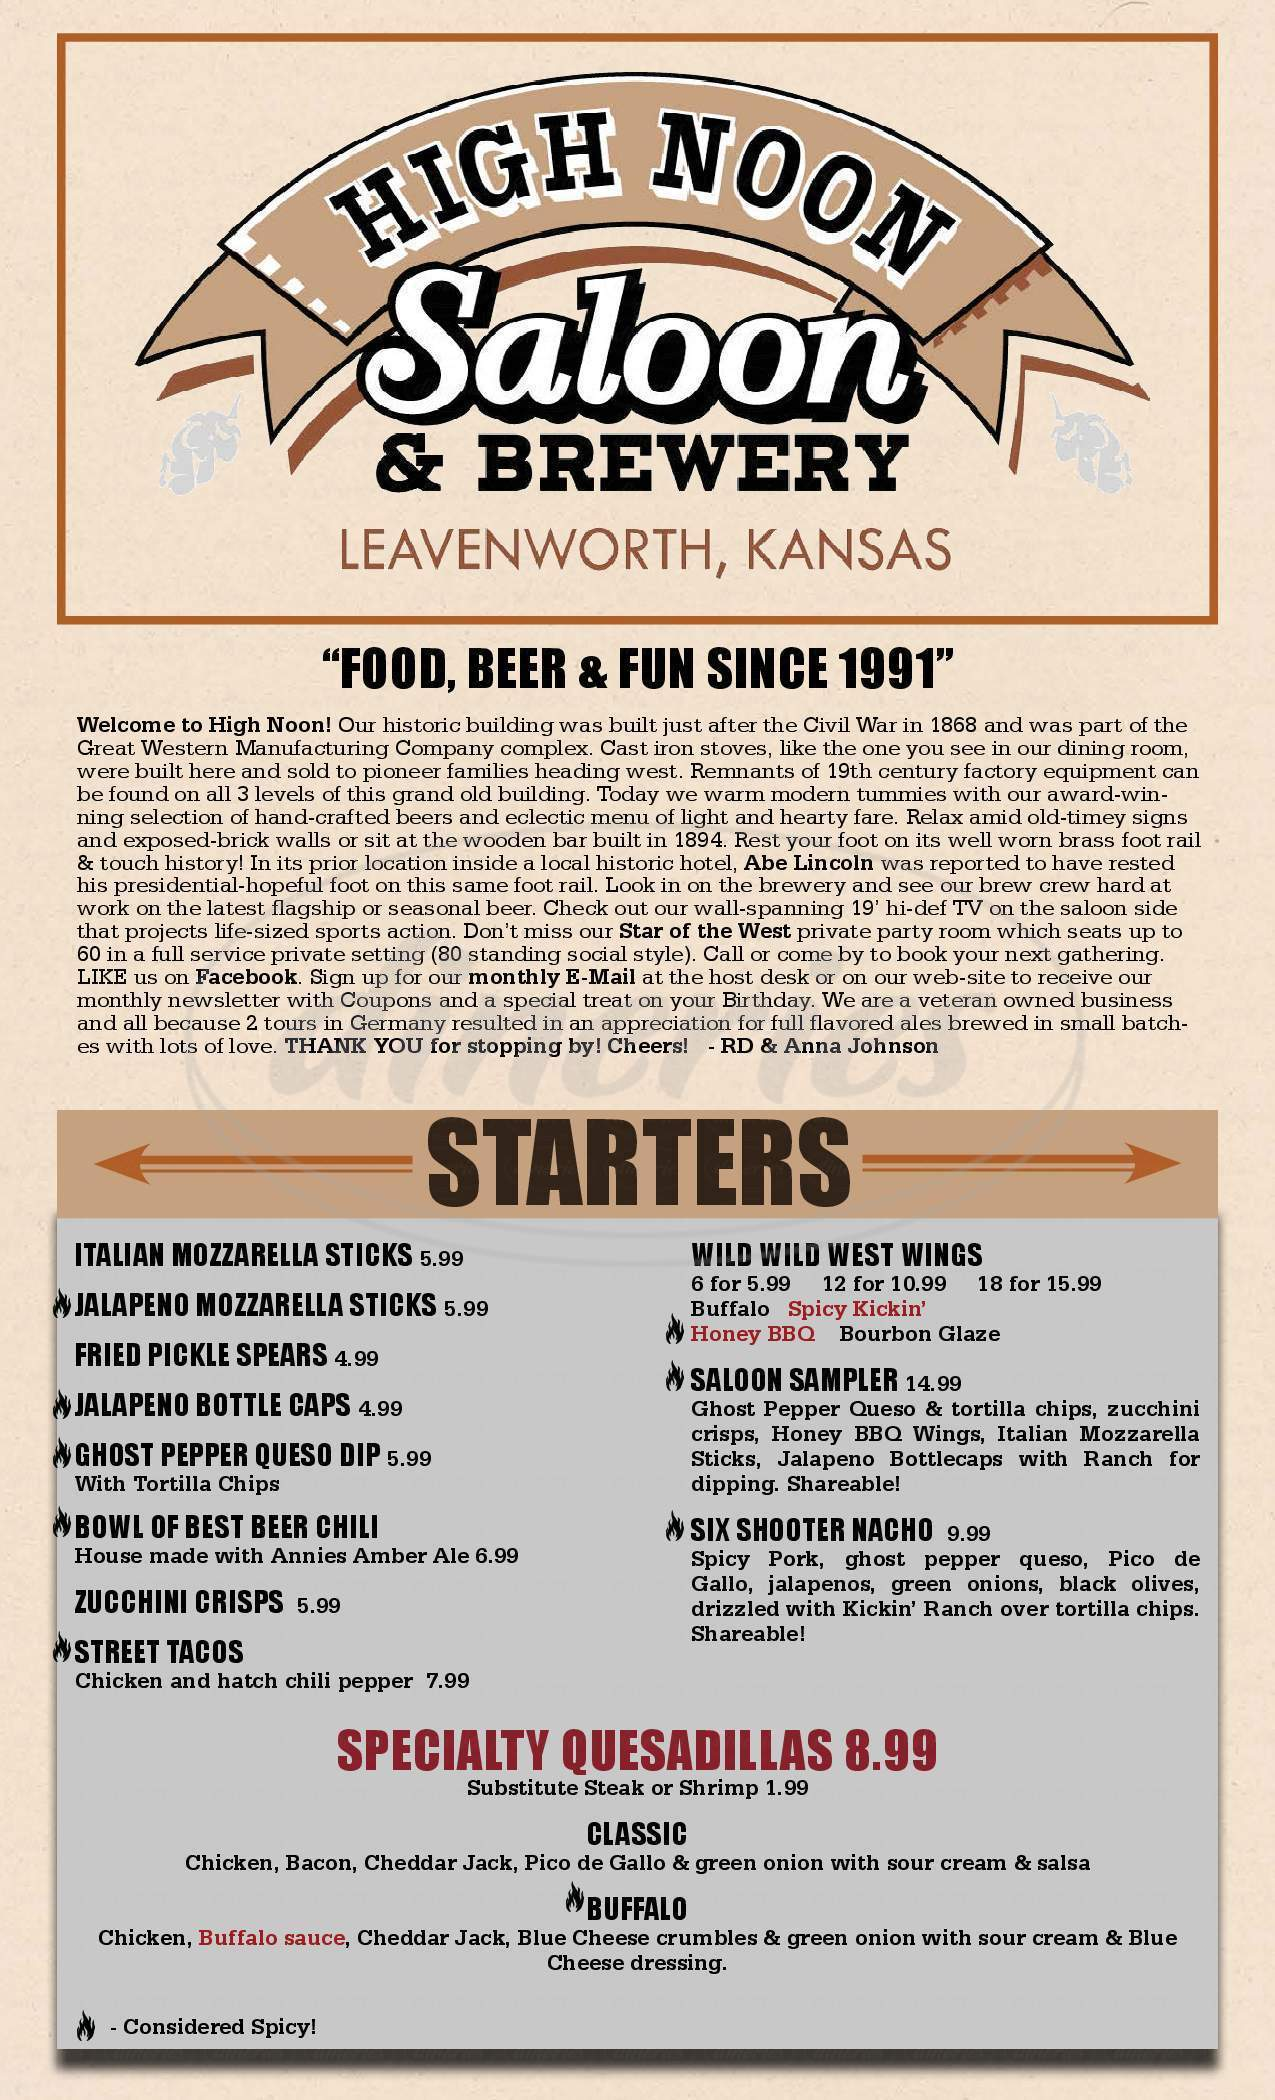 menu for High Noon Saloon & Brewery